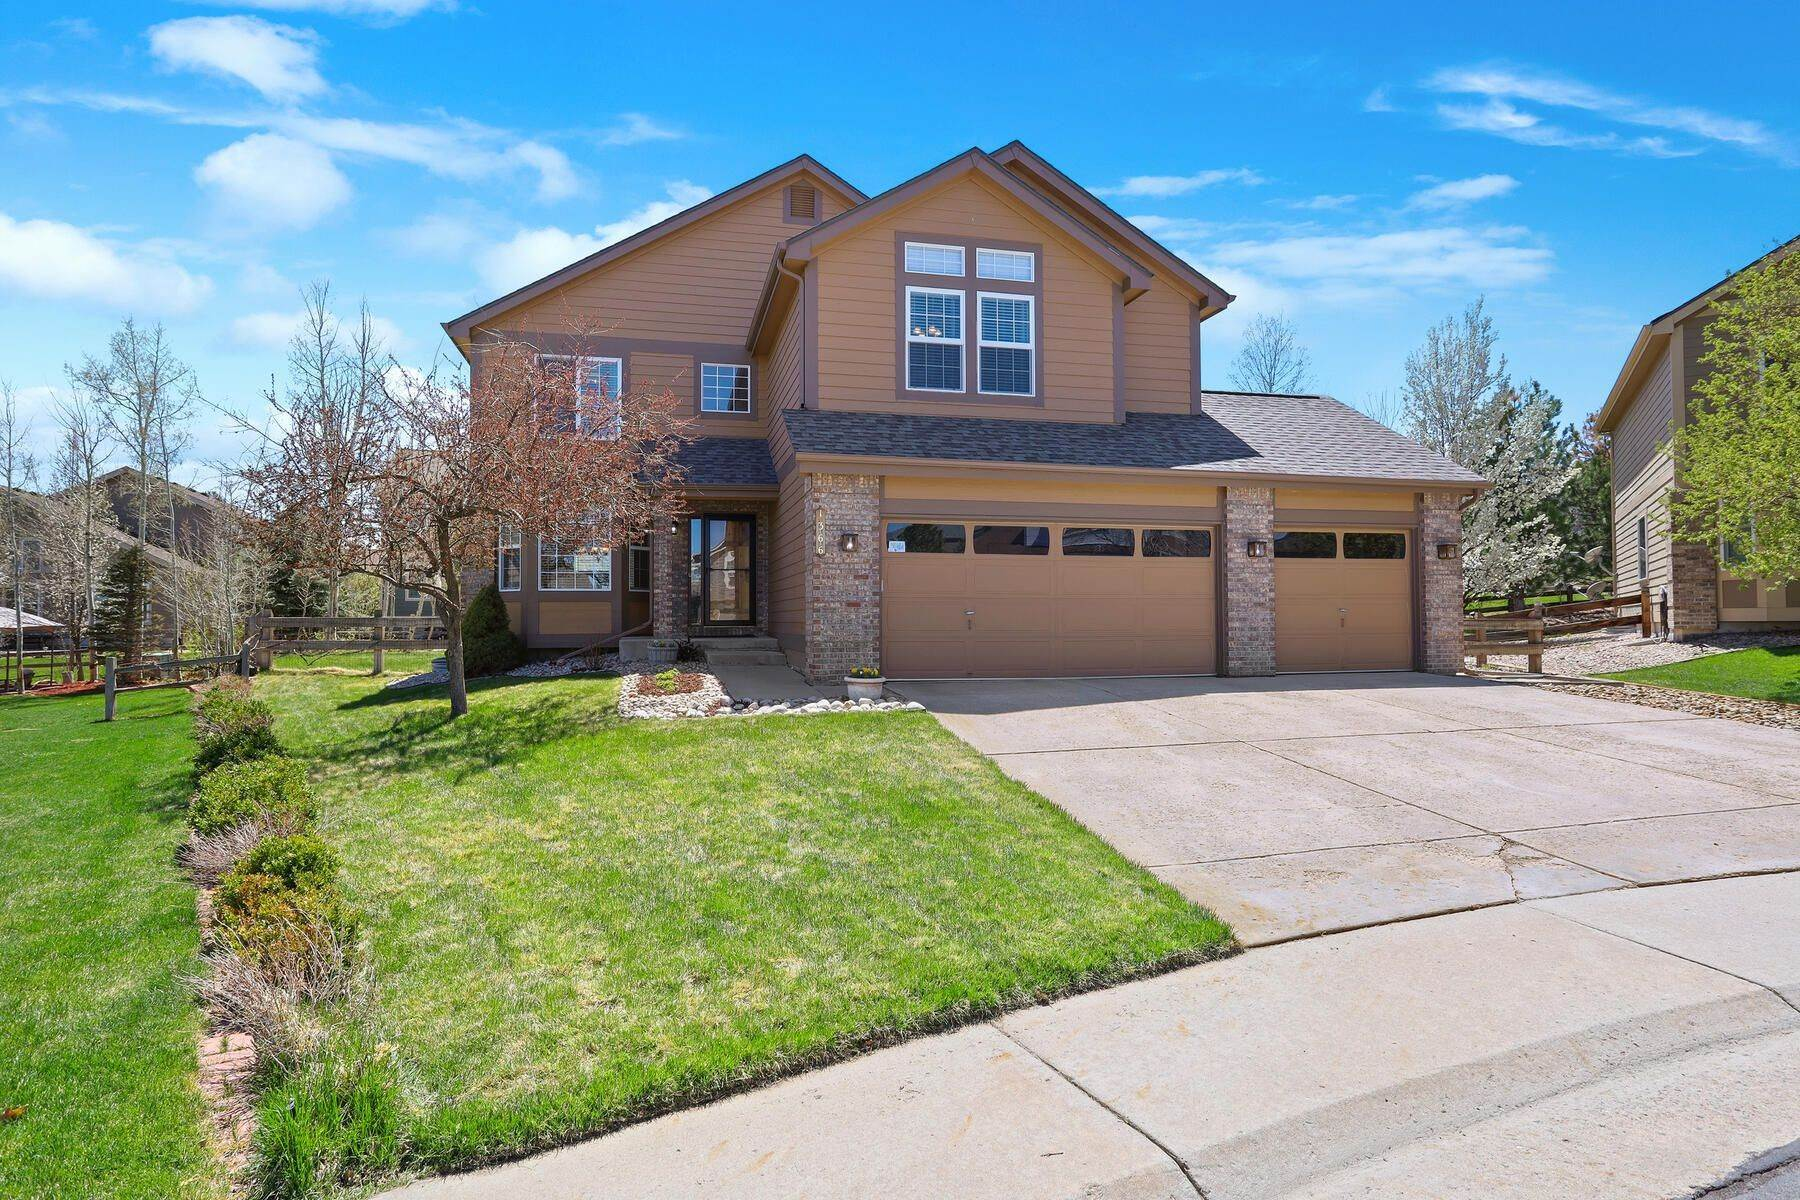 Single Family Homes for Active at 1366 Ballata Court, Castle Rock, Co, 80109 1366 Ballata Court Castle Rock, Colorado 80109 United States